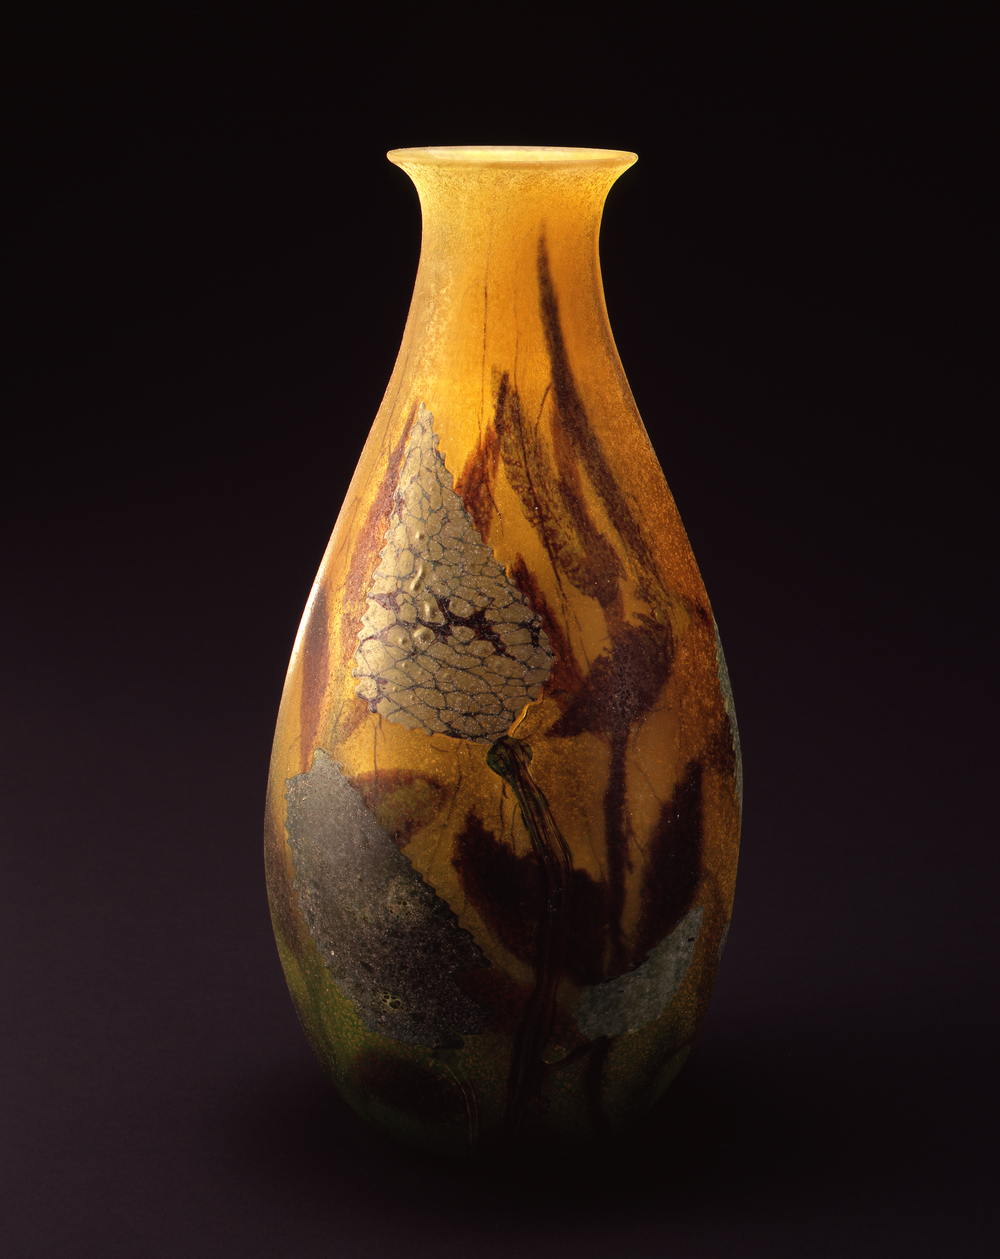 William Morris,  Vase with Leaf Forms  (2004, glass, 18 3/4 x 9 1/8 x 9 1/4 inches), WM.25